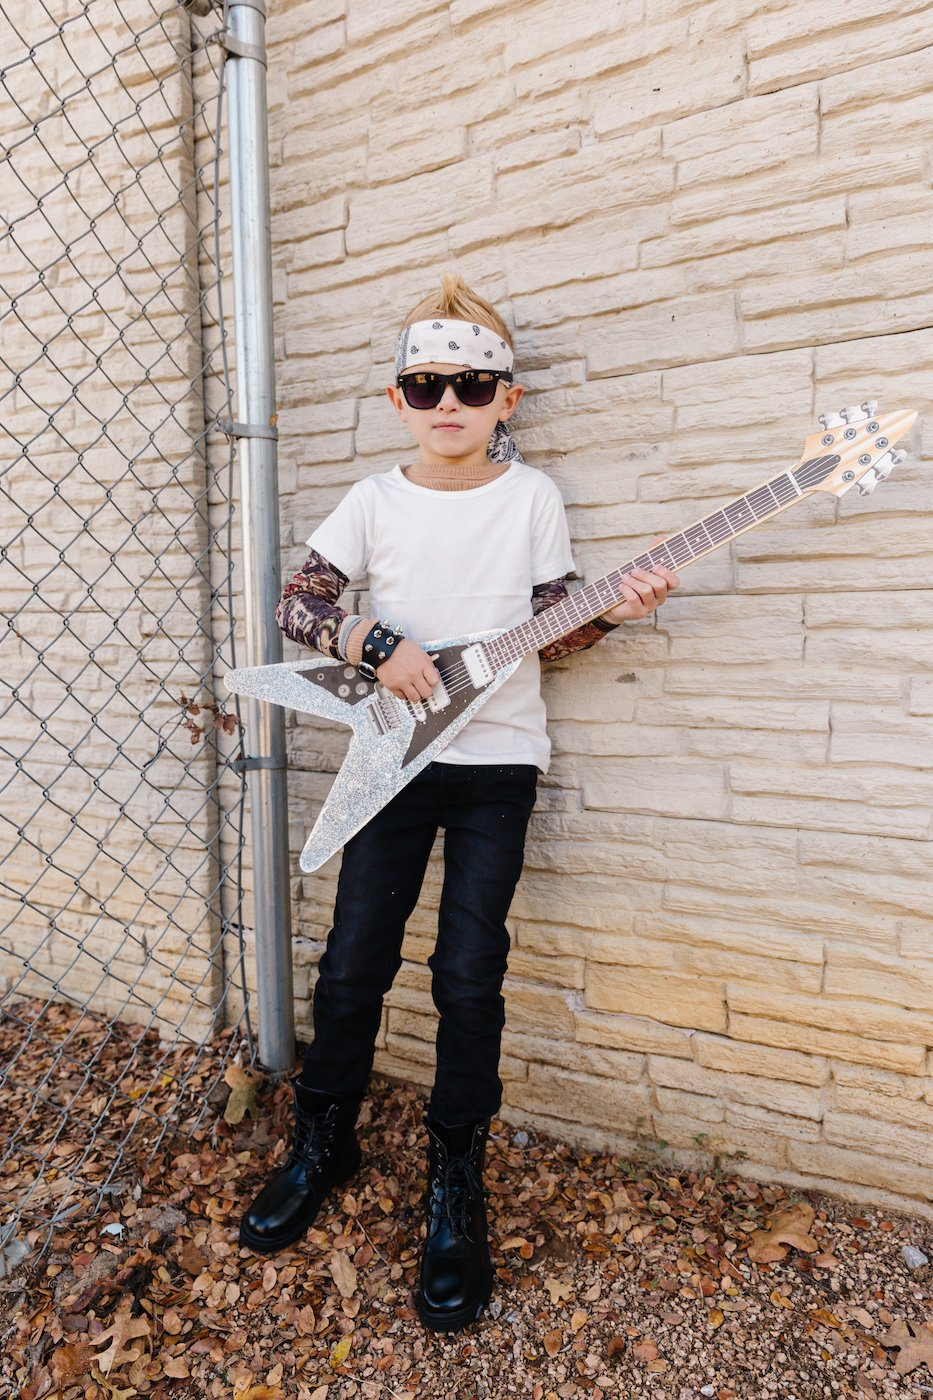 Kids rockstar halloween costume